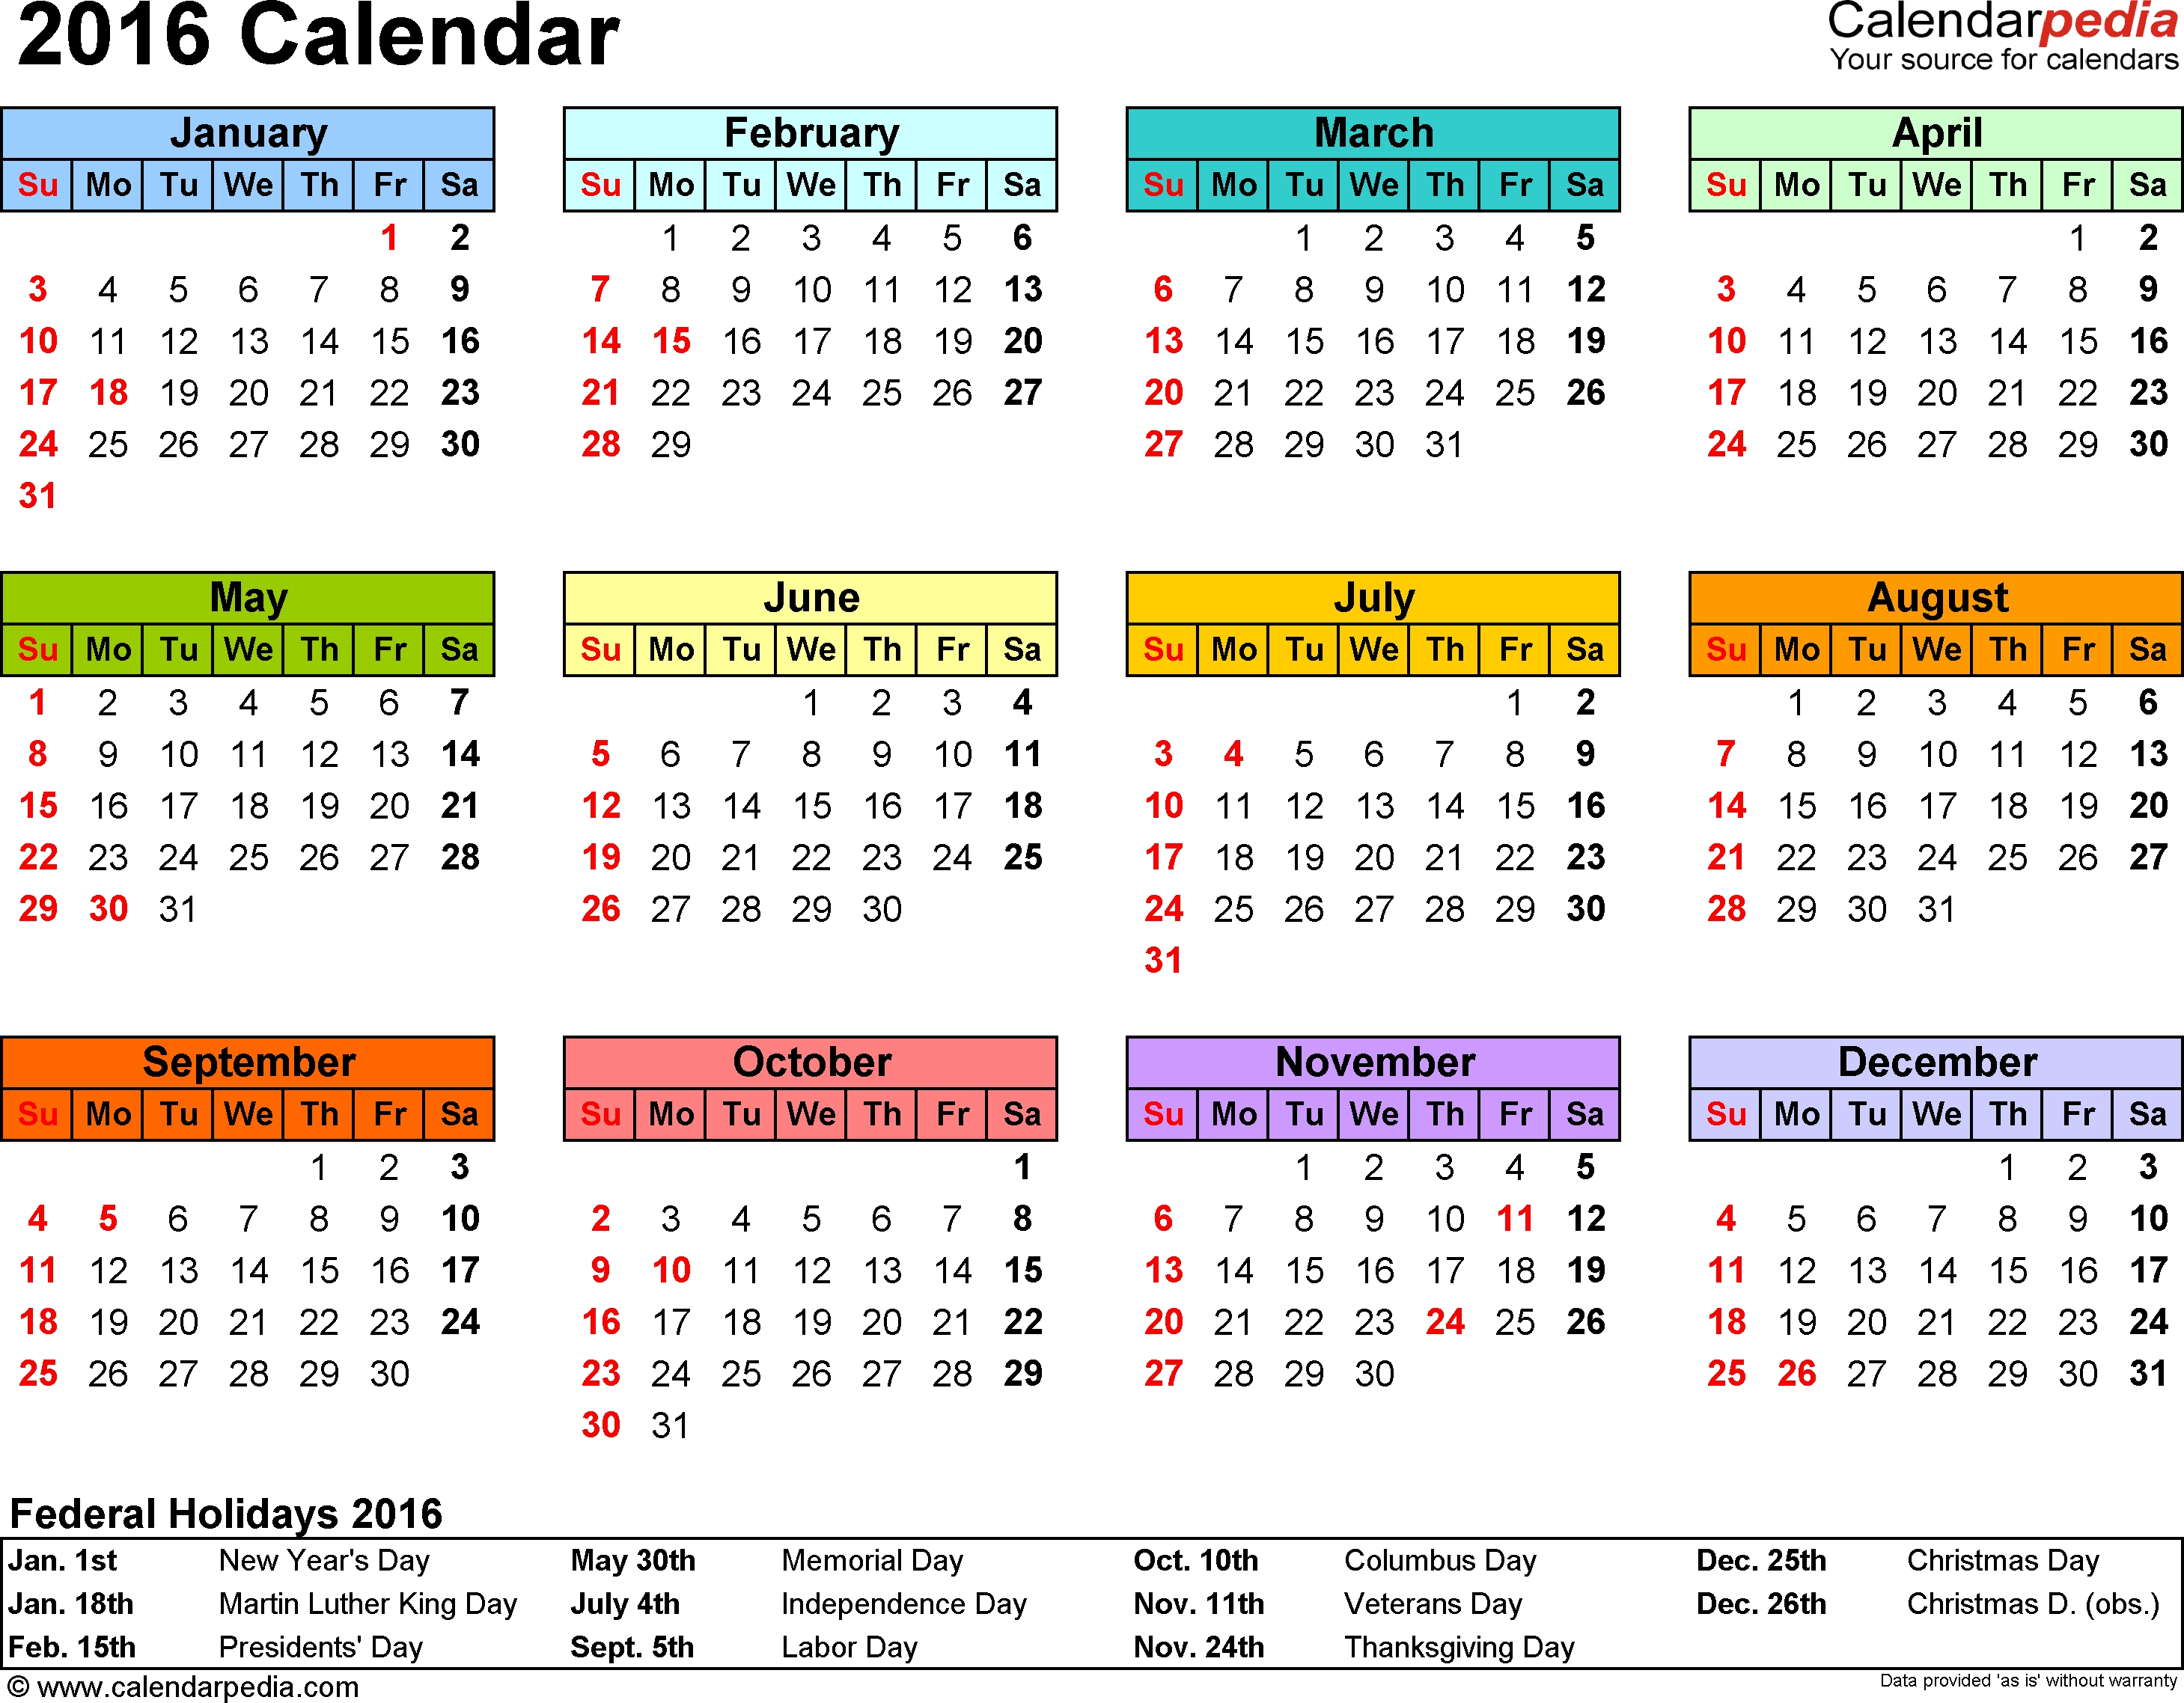 Template 7 2016 Calendar For Pdf Year At A Glance 1 Page In